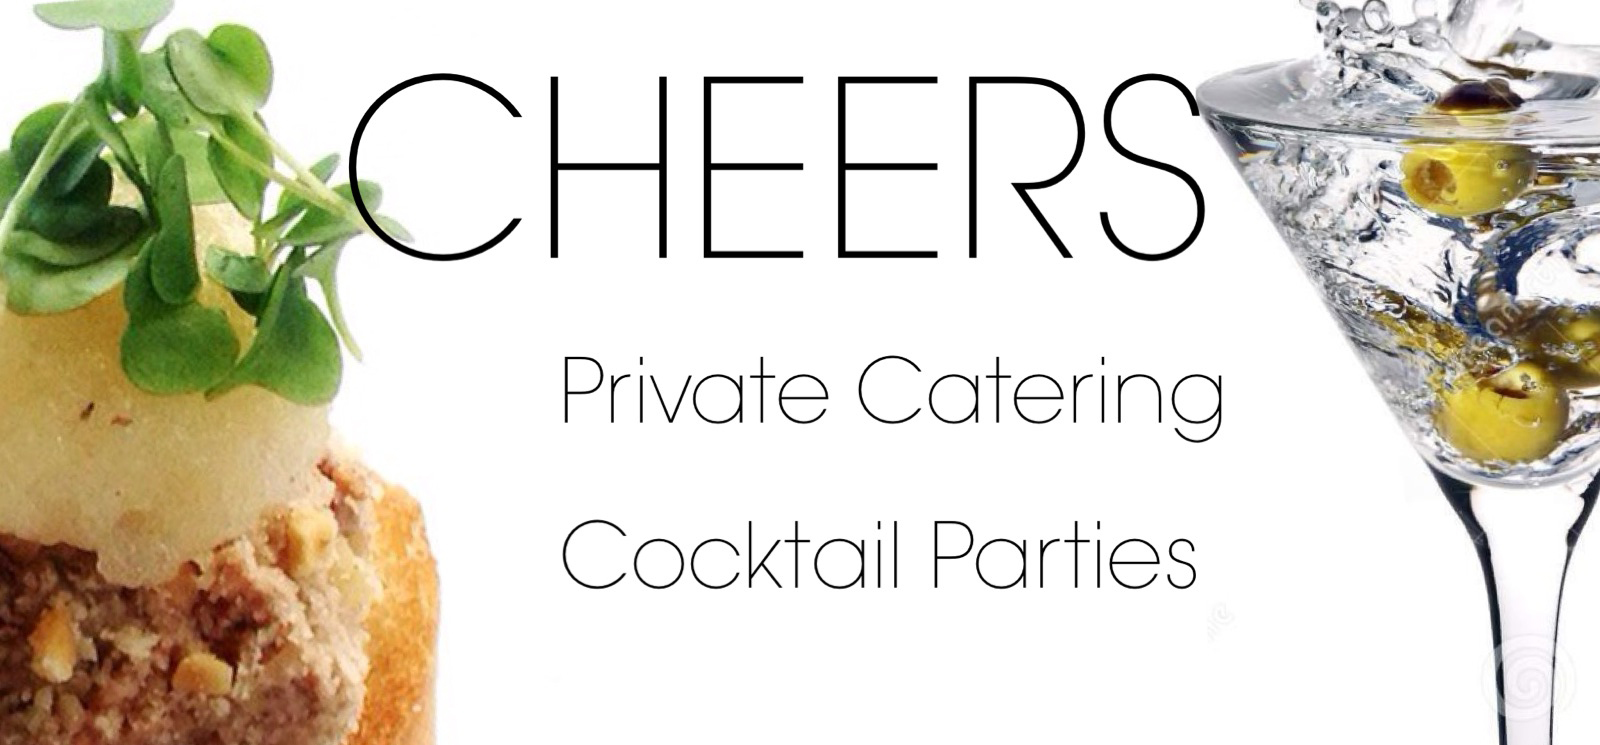 Cheers private catering heading